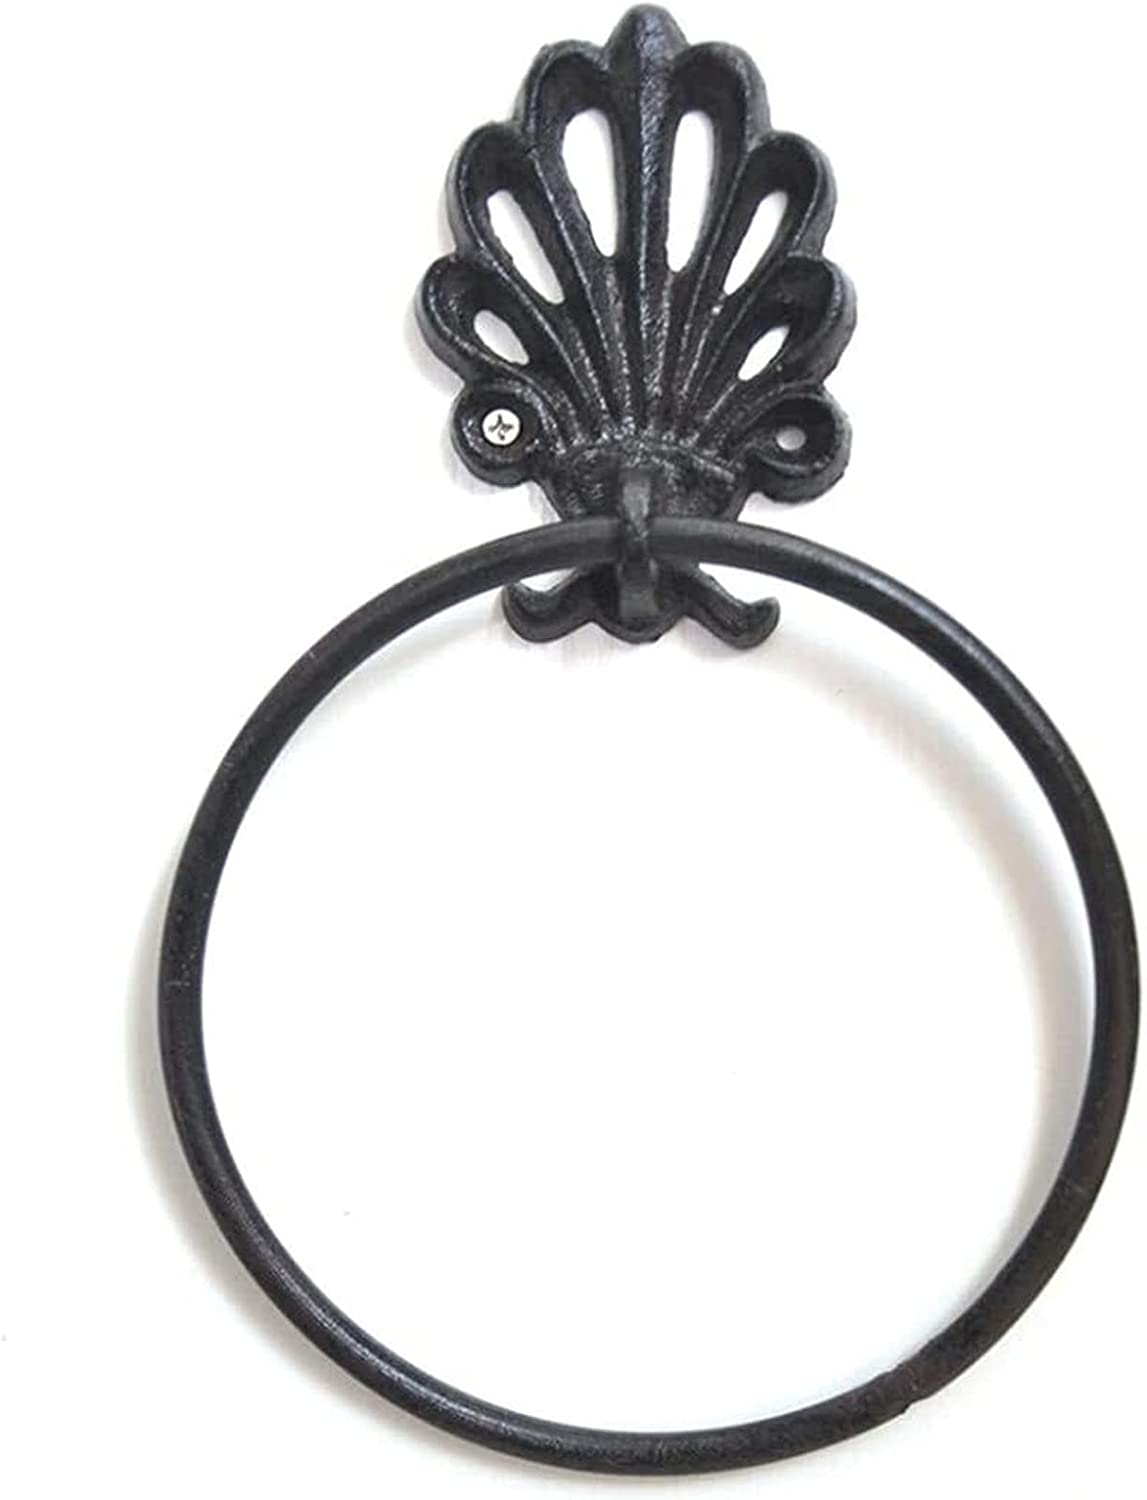 Towel rack Bathroom Ring Wall Inventory cleanup selling sale Black Lowest price challenge I Retro Iron Mounted